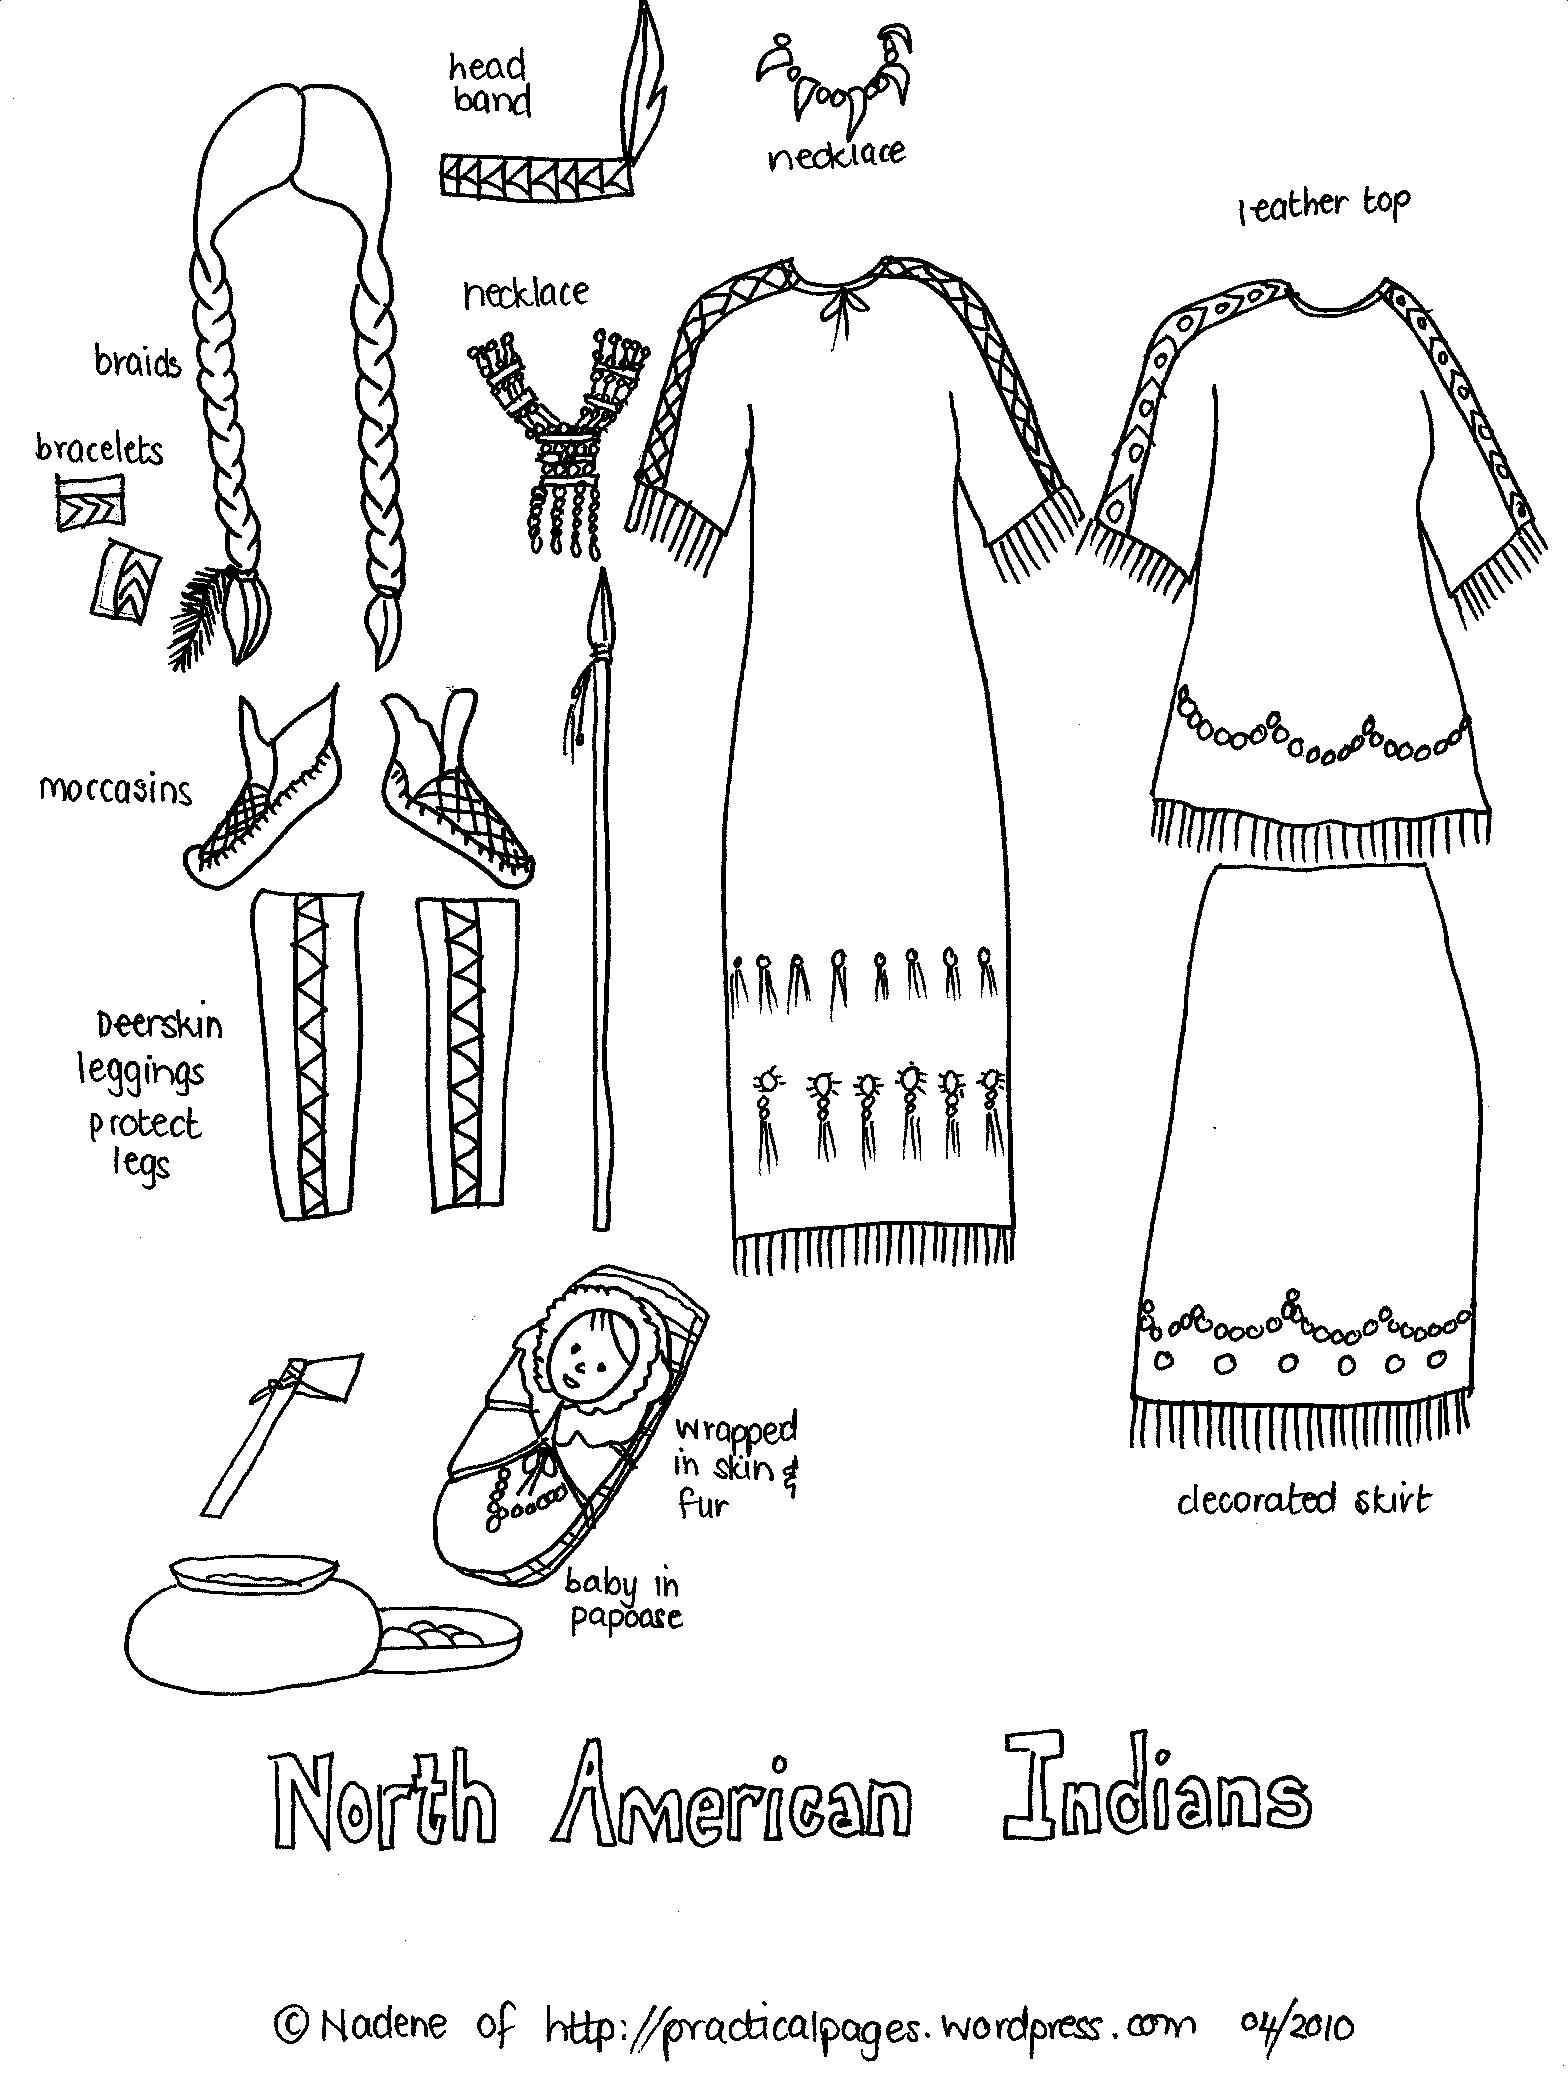 Paper Dolls Of Ancient Japan China India And North American